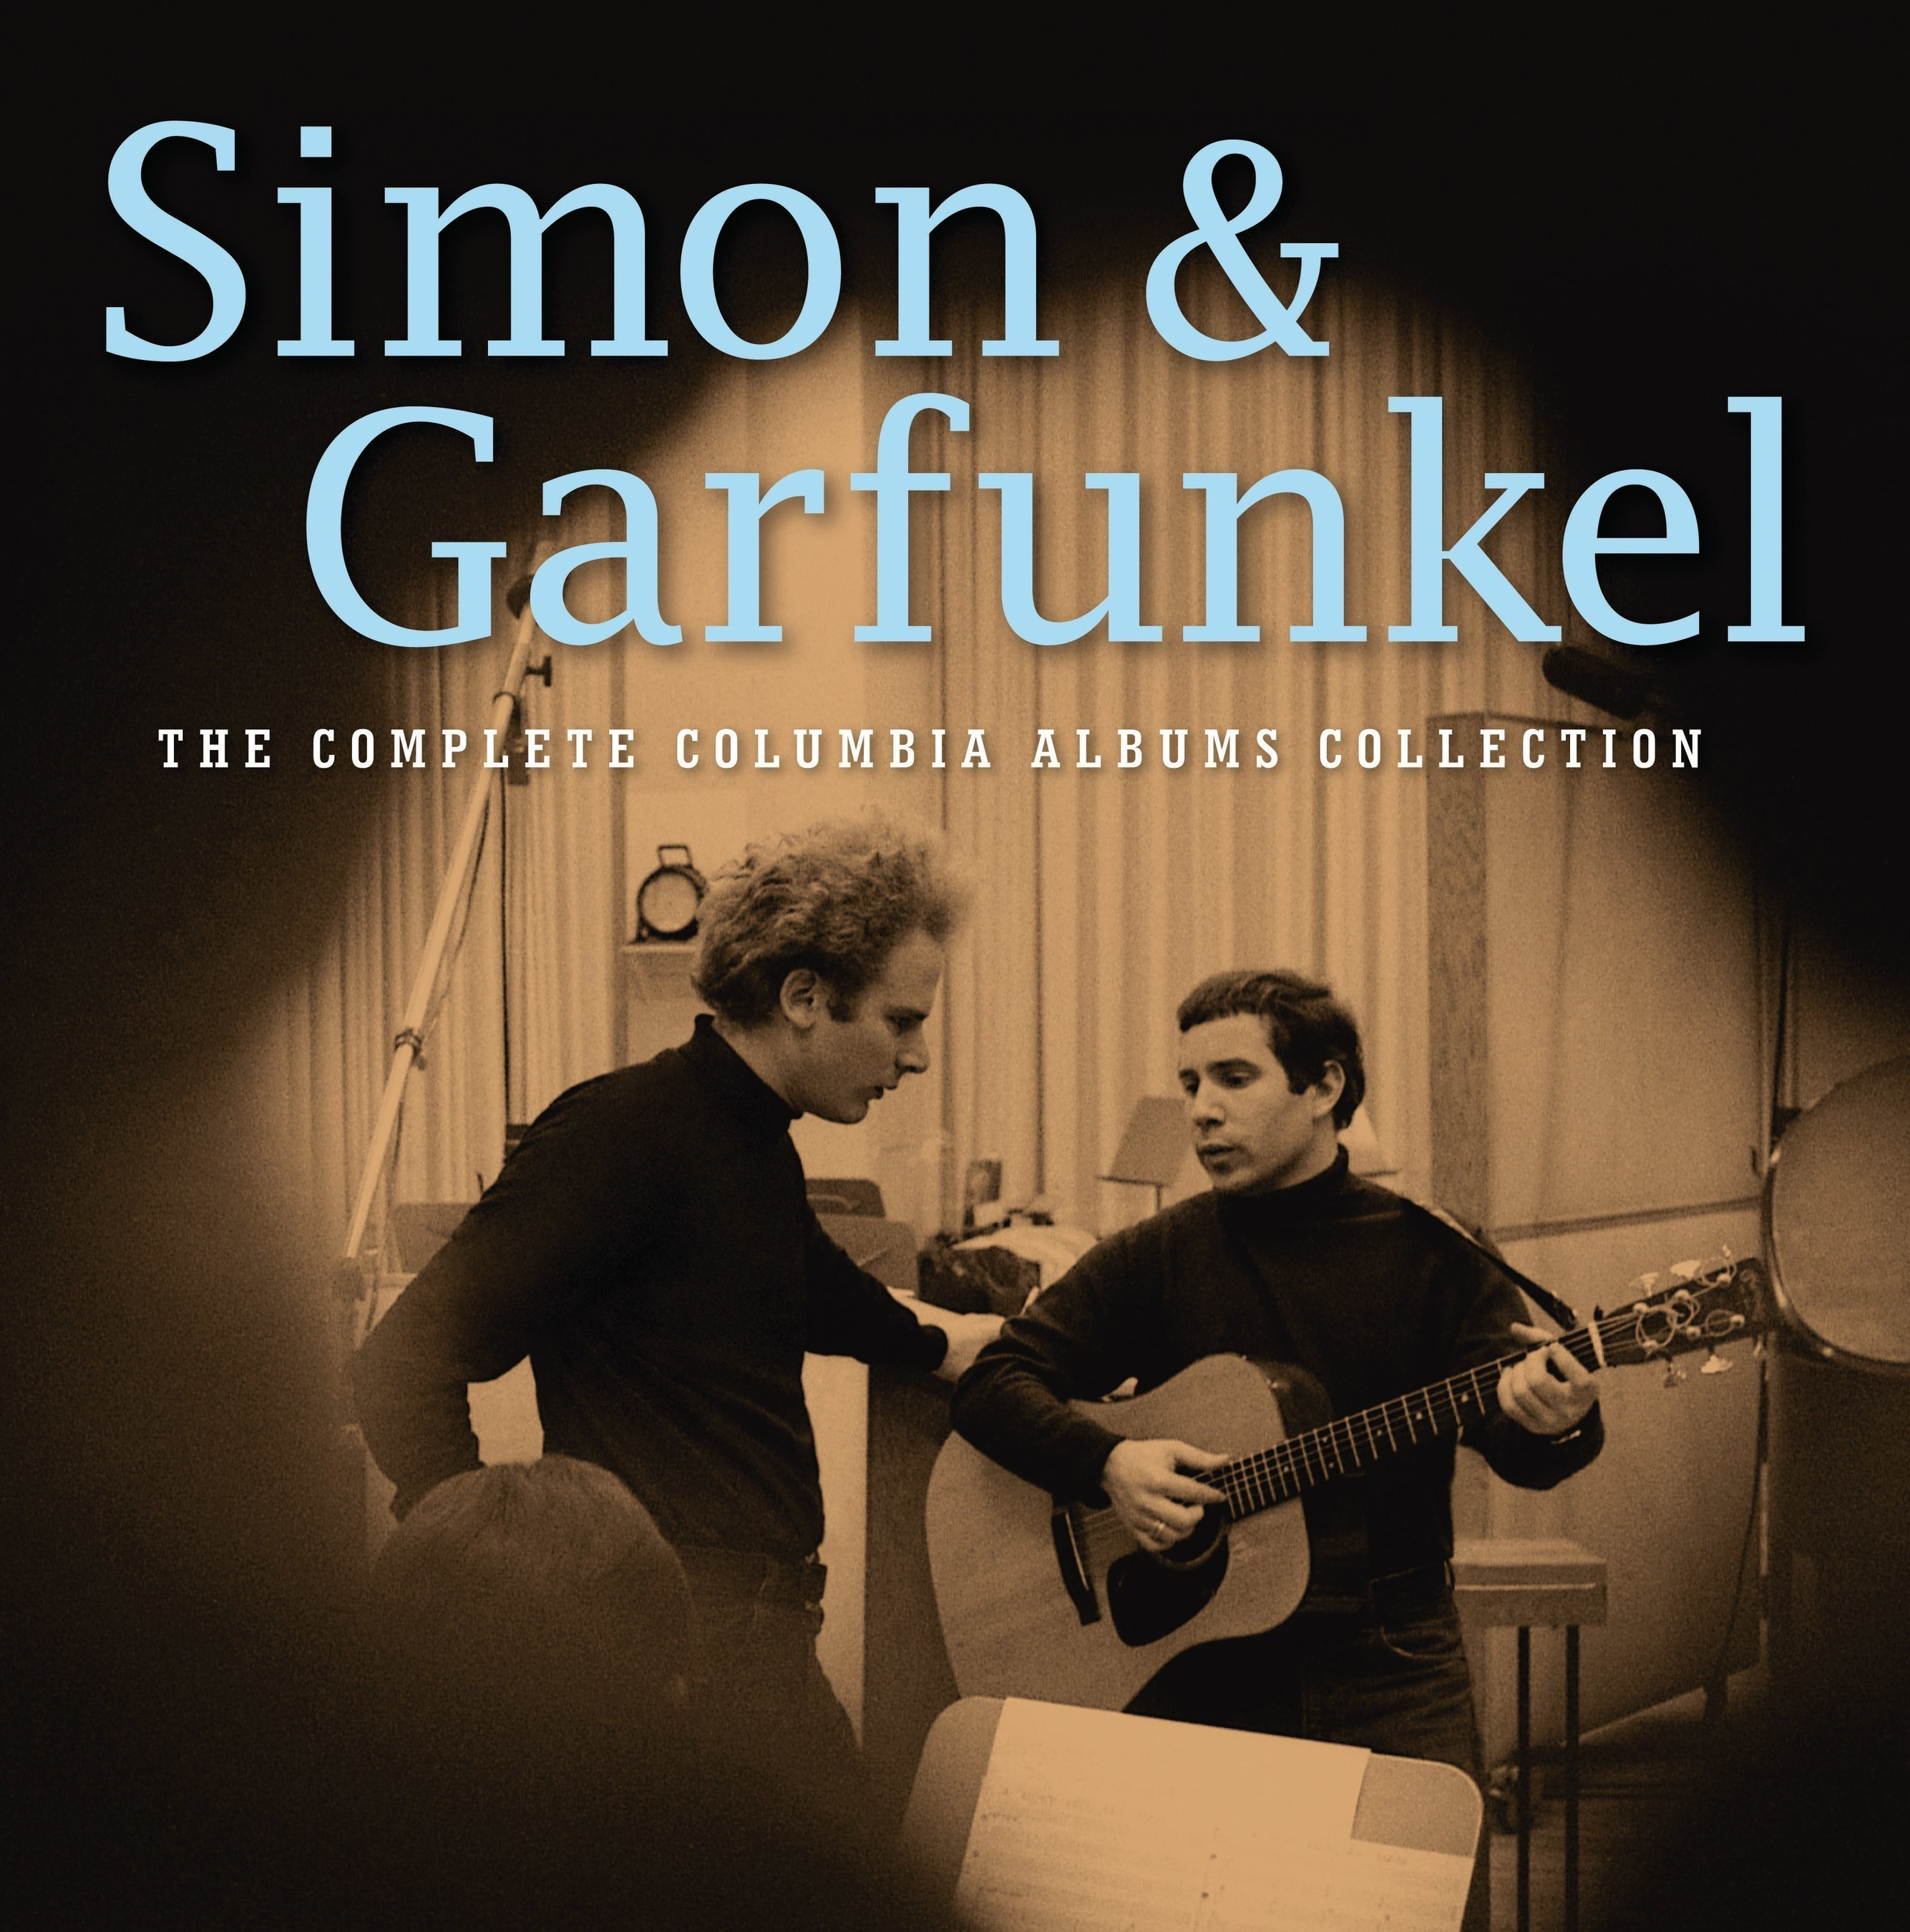 """Simon & Garfunkel - The Complete Columbia Albums Collection on 180gram Audiophile Vinyl and Simon & Garfunkel: The Concert in Central Park on CD/DVD for the First Time and 12"""" Vinyl to be released on August 7"""